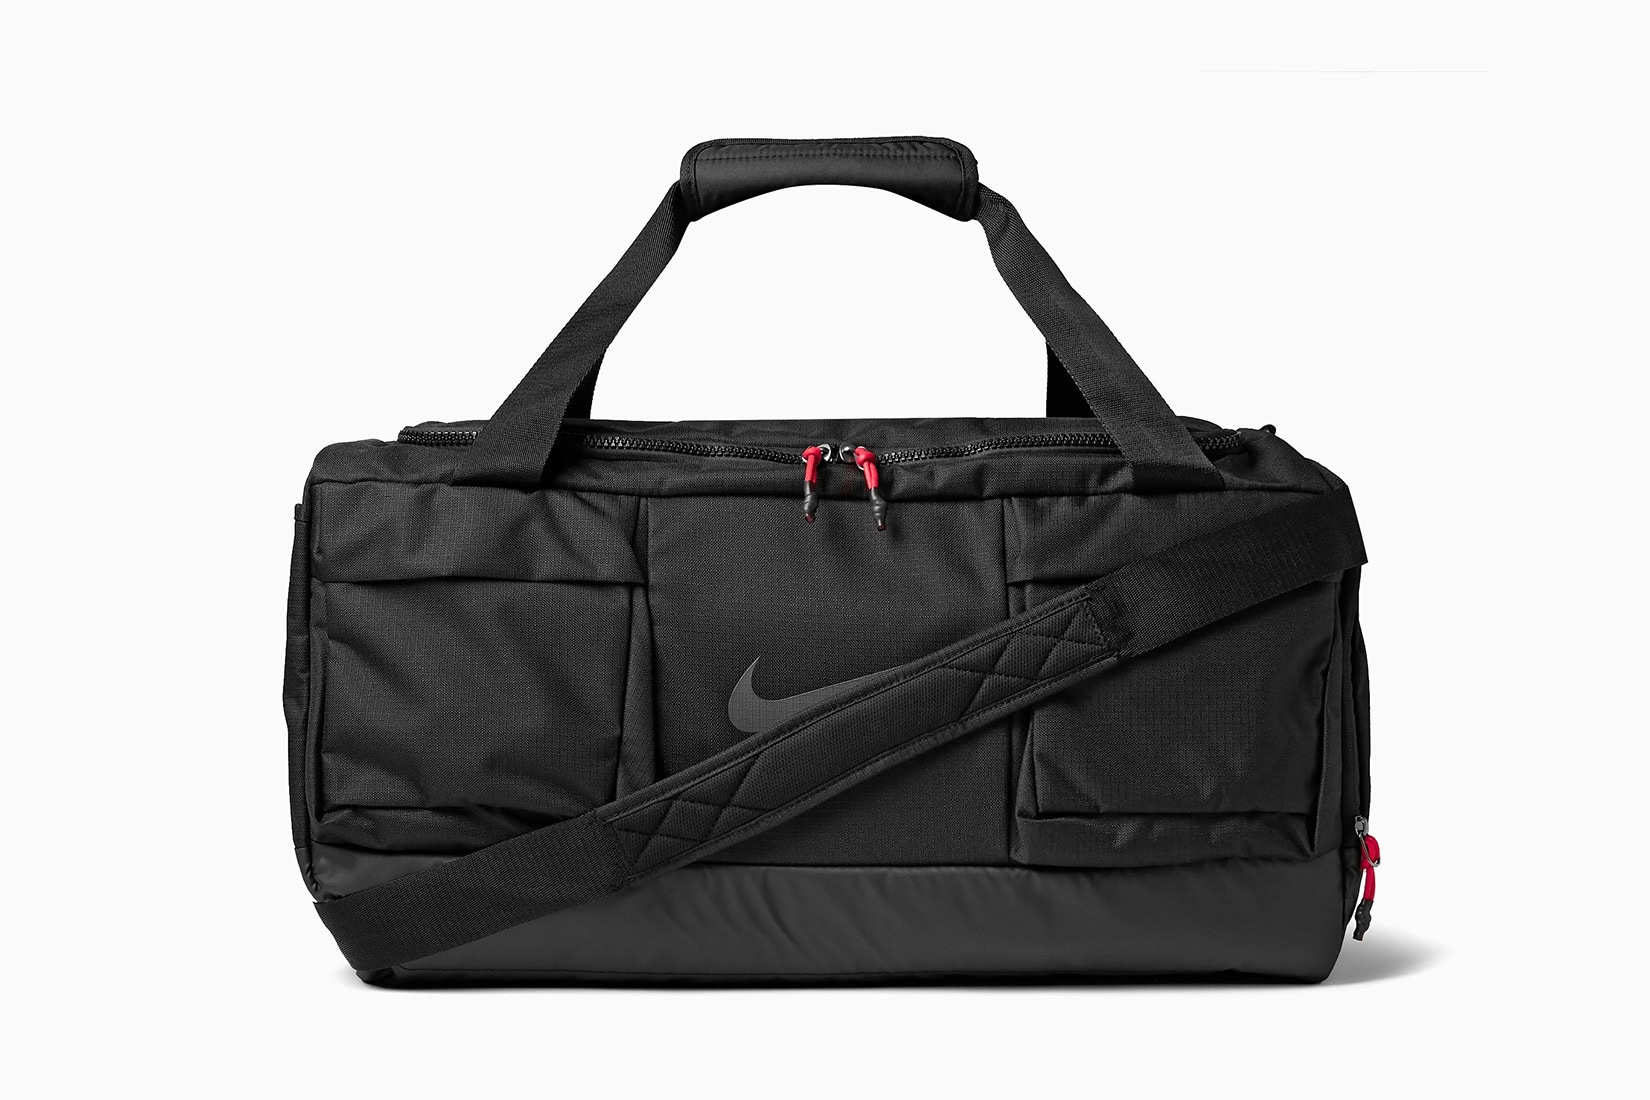 best duffel bags nike golf ripstop - Luxe Digital